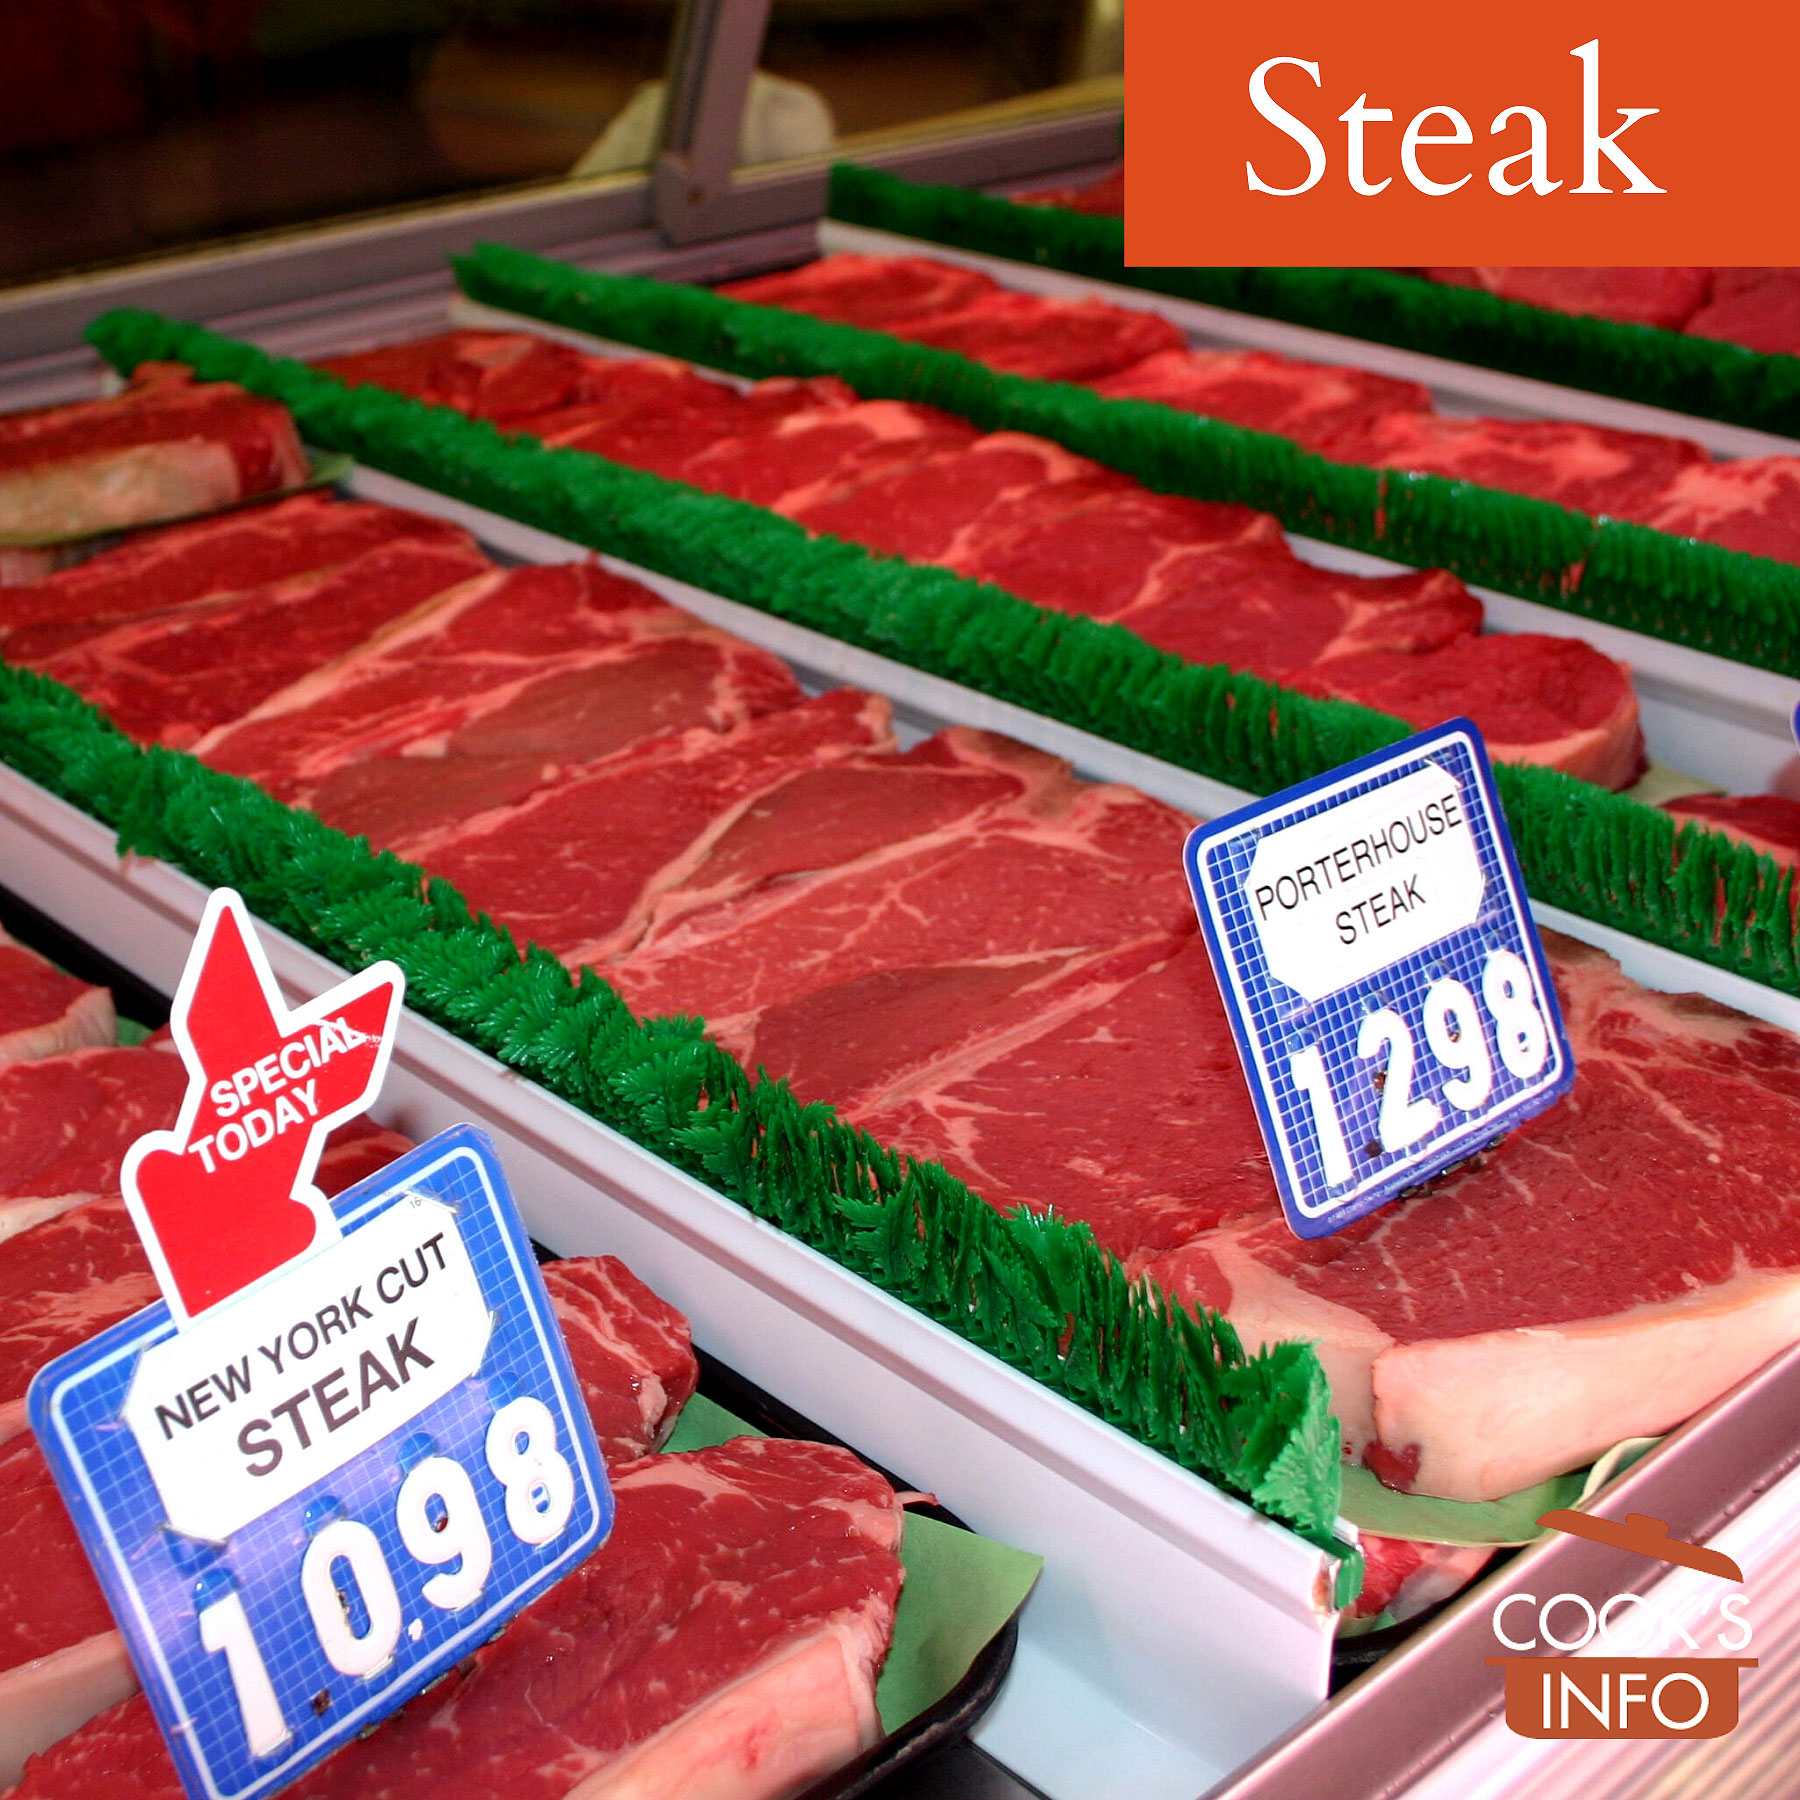 Raw steaks for sale at butcher counter